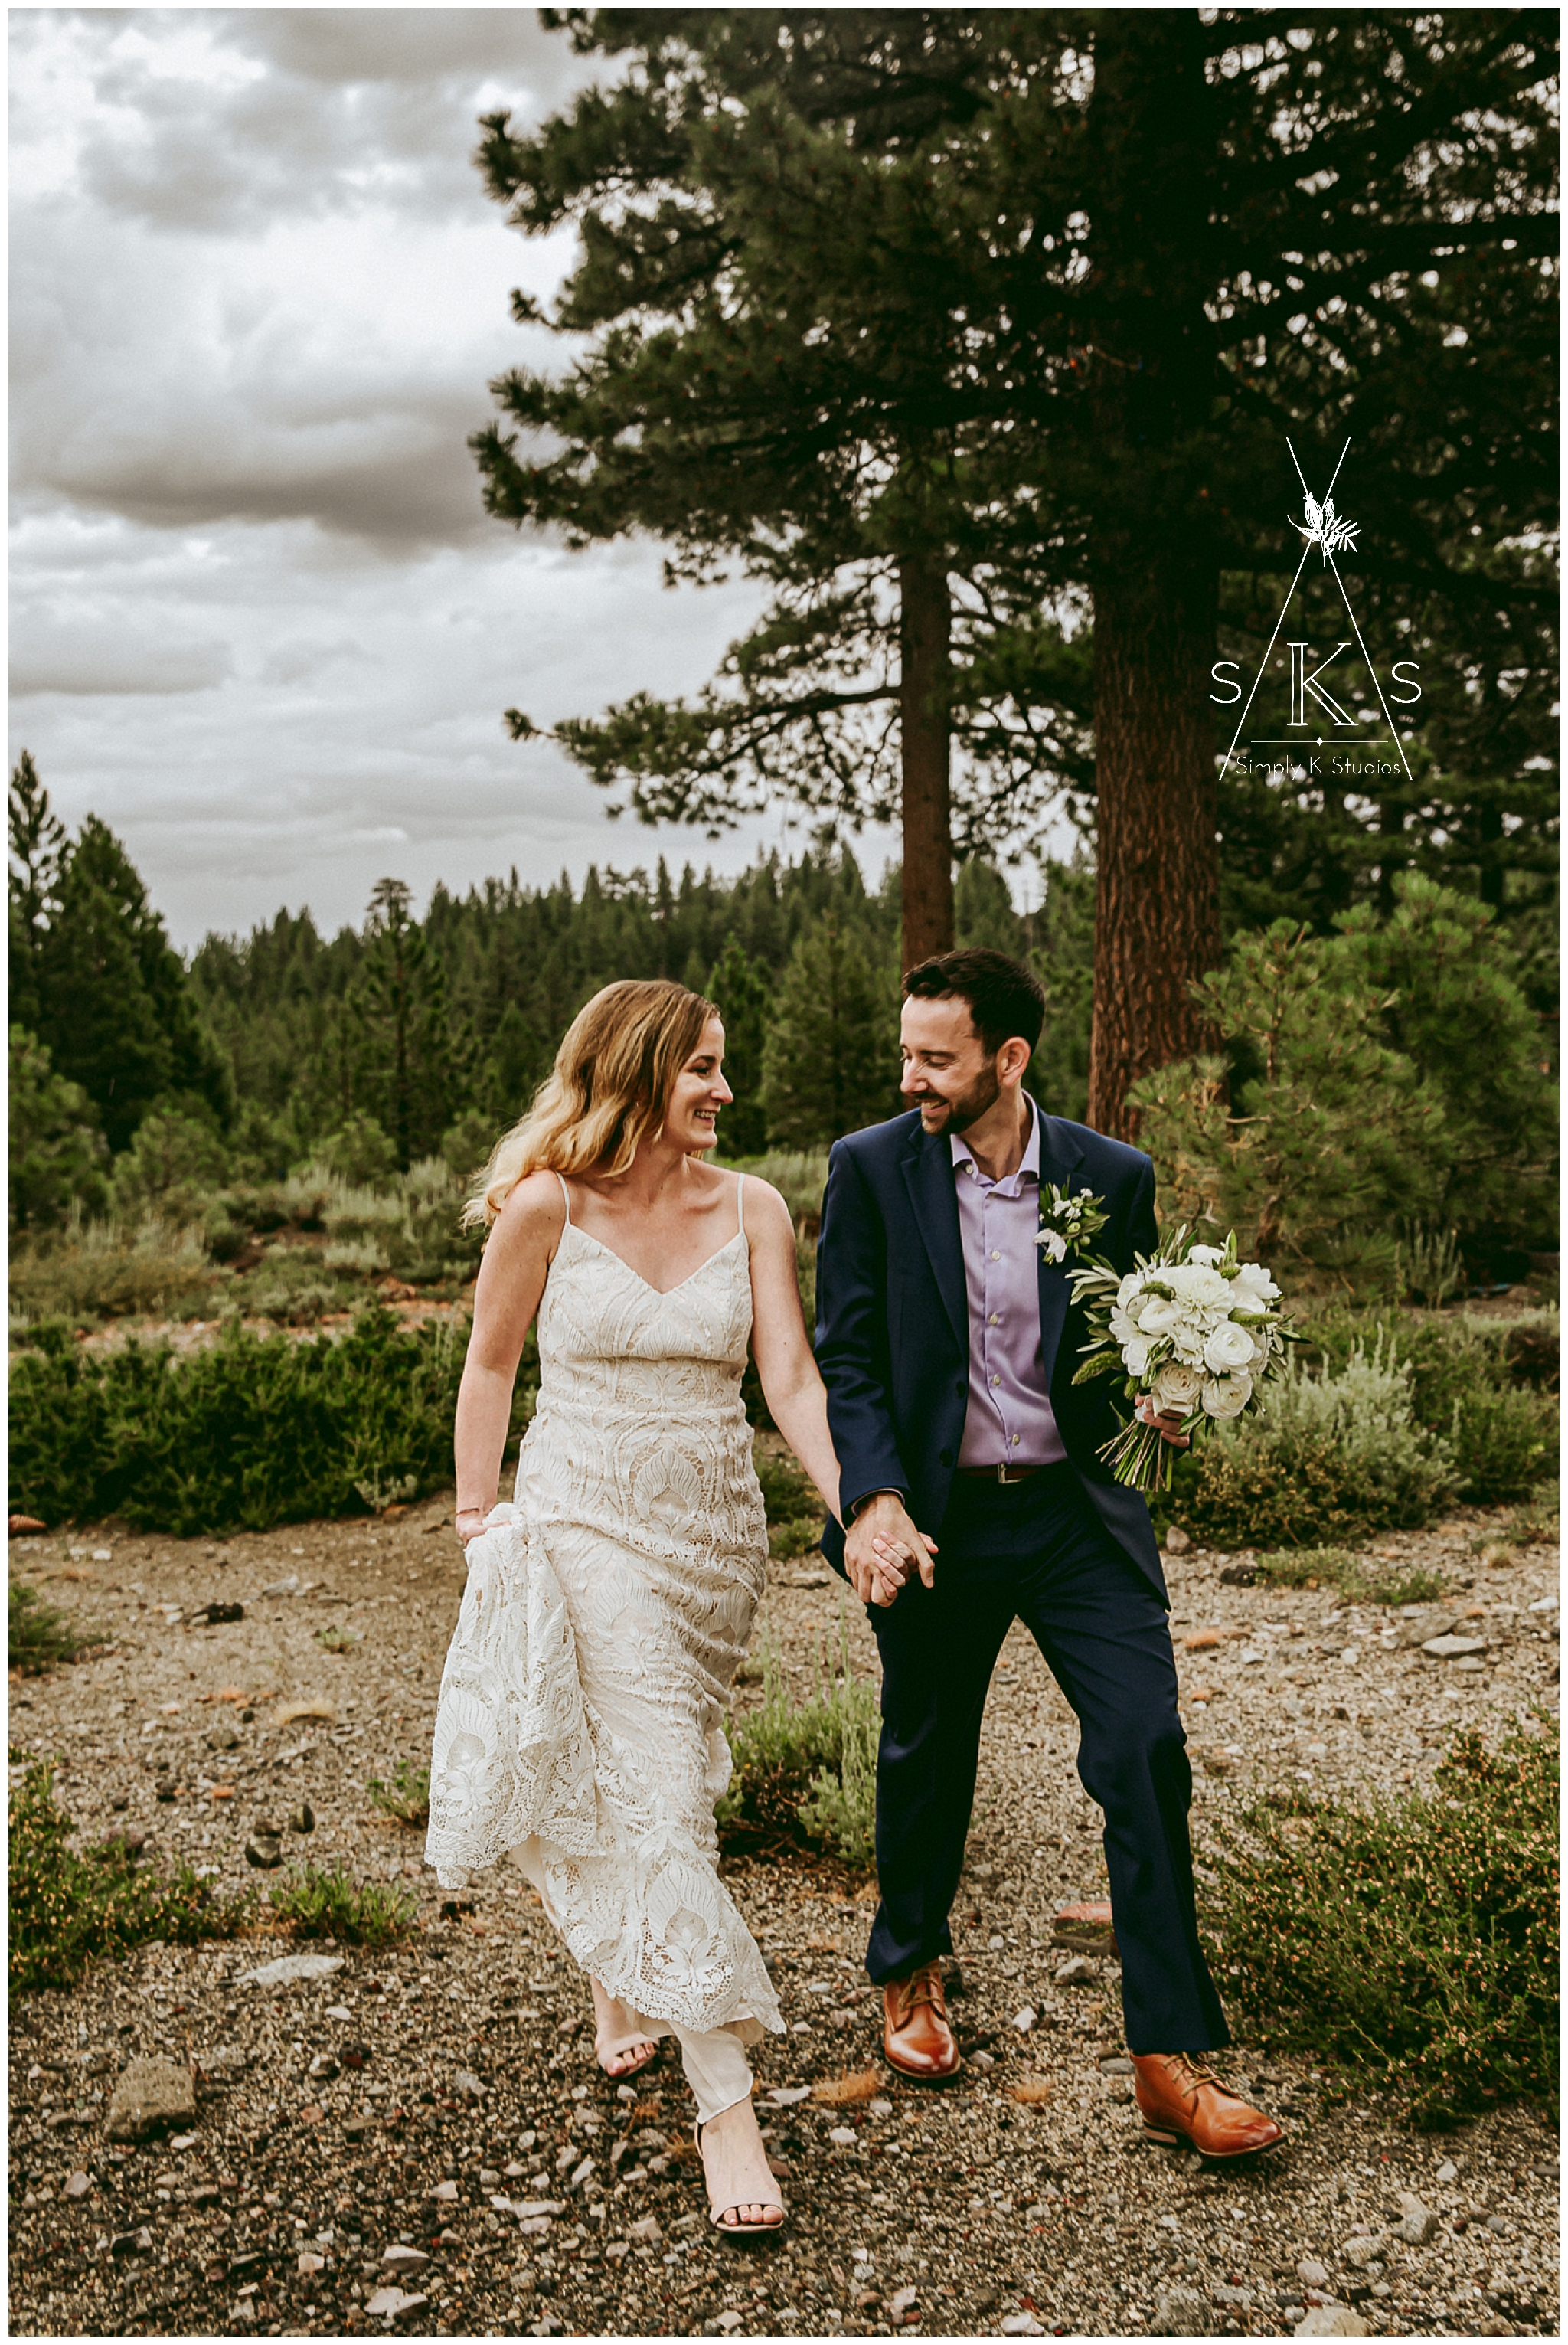 96 Wedding Photos at Tannenbaum Alpine Events in Reno Nevada.jpg